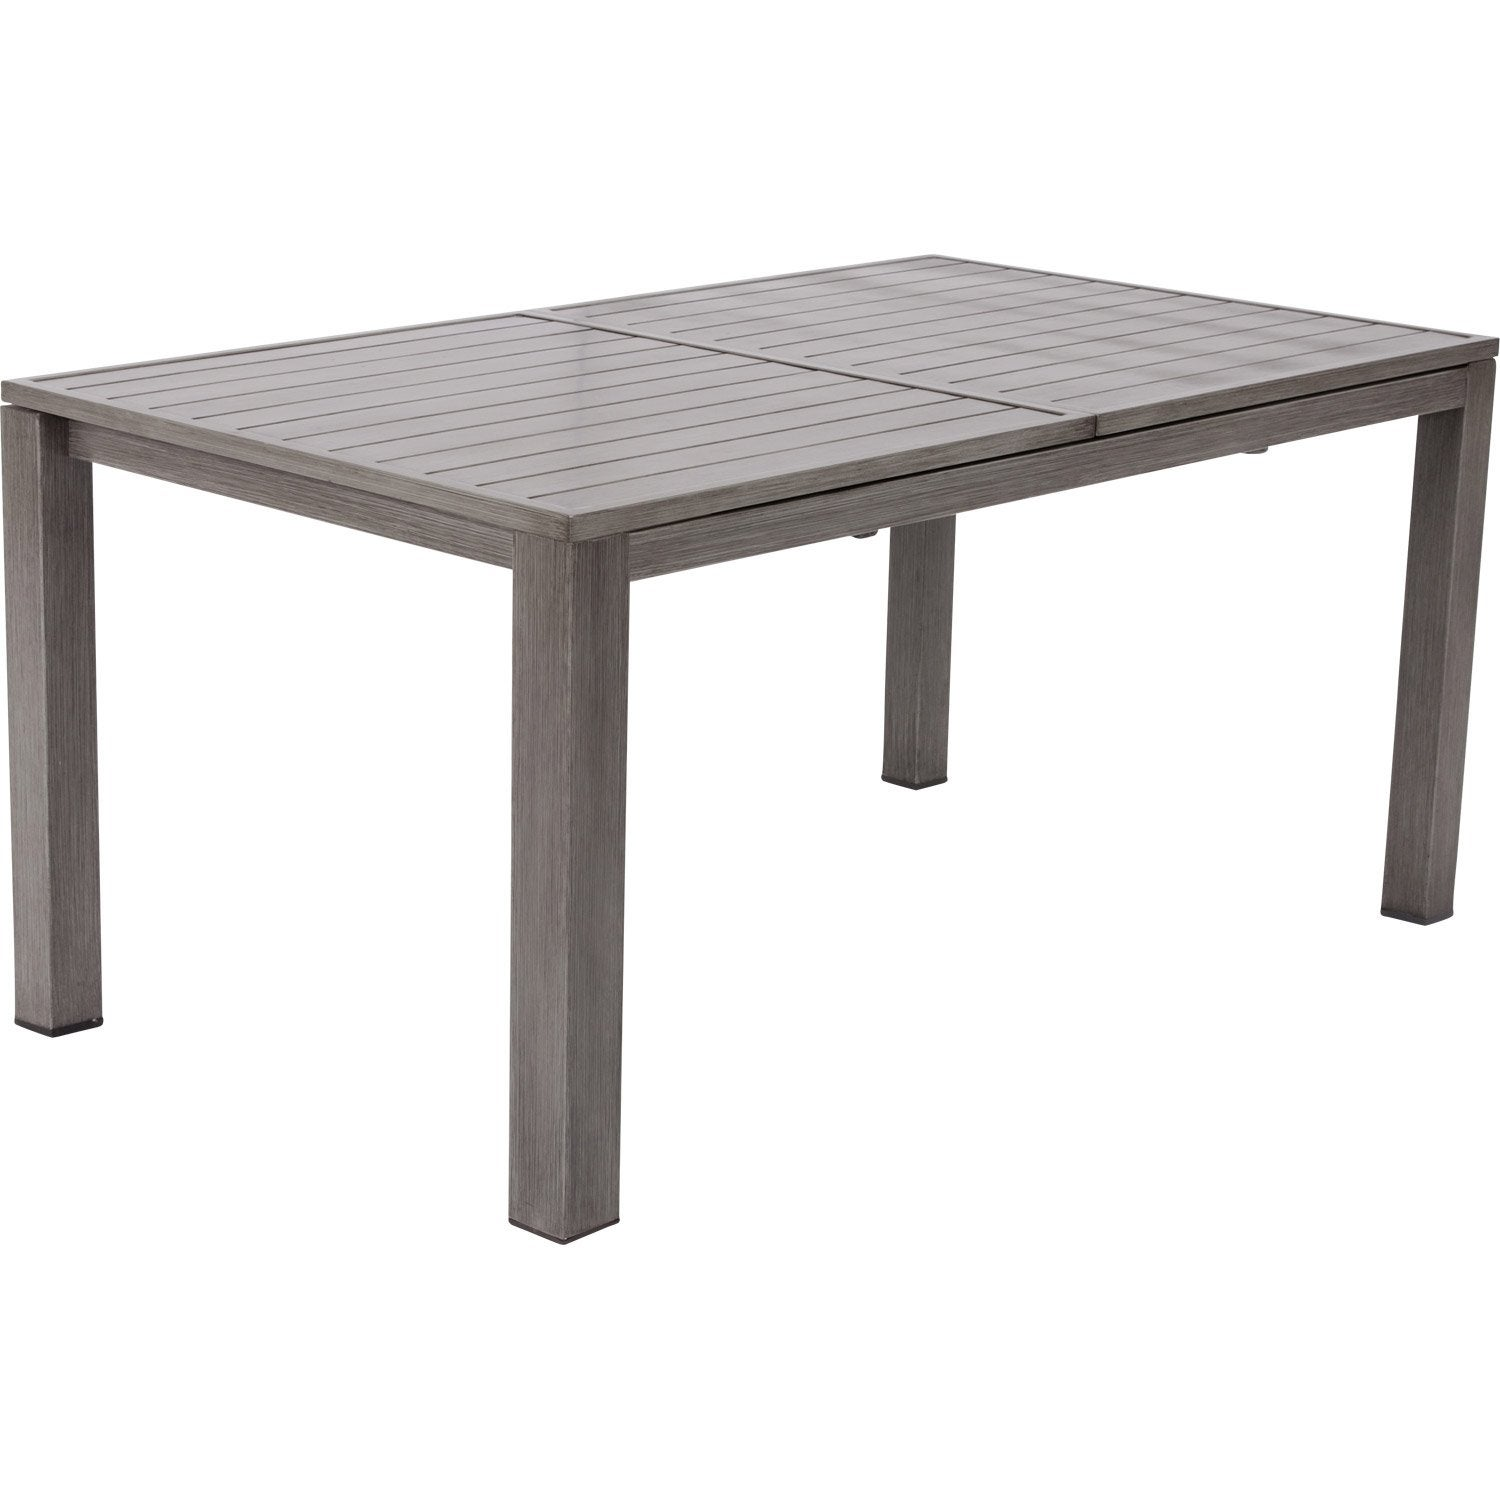 Table de jardin naterial antibes rectangulaire gris look for Salon de jardin alu et bois